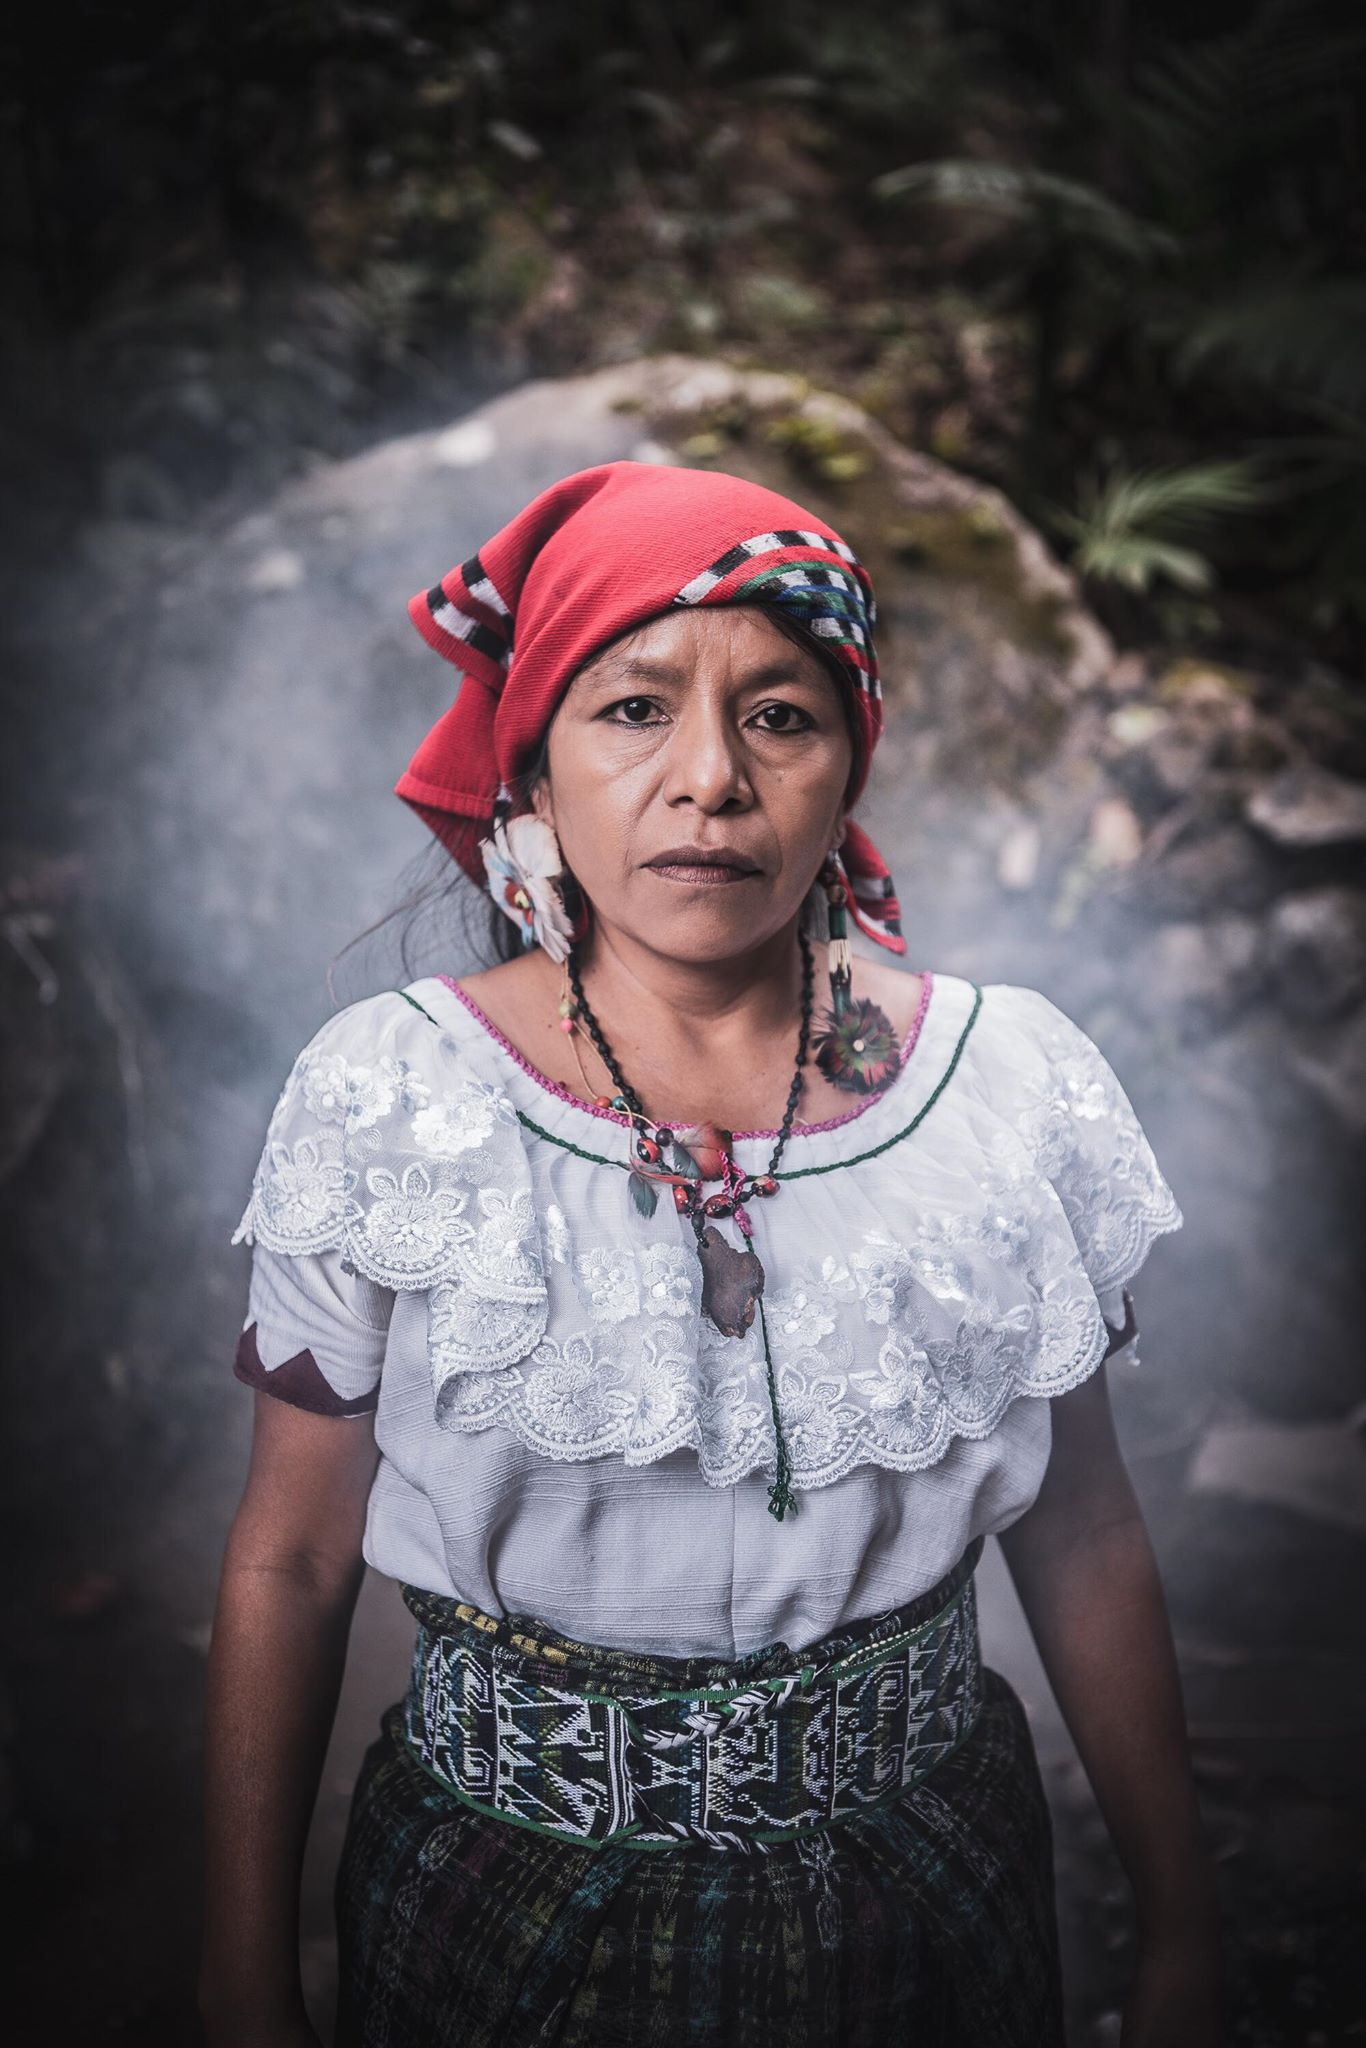 Marina Cruz  Nana Marina is a spiritual guide from the Mayan Tz ́utujil Tribe based in Guatemala. She is part of a group known as the walkers for the life and the peace of earth. Nana Marina is a powerful ceremonial leader of fire, tobacco, and Cacao. She is known globally for her dedication to sharing the ancestral wisdom.